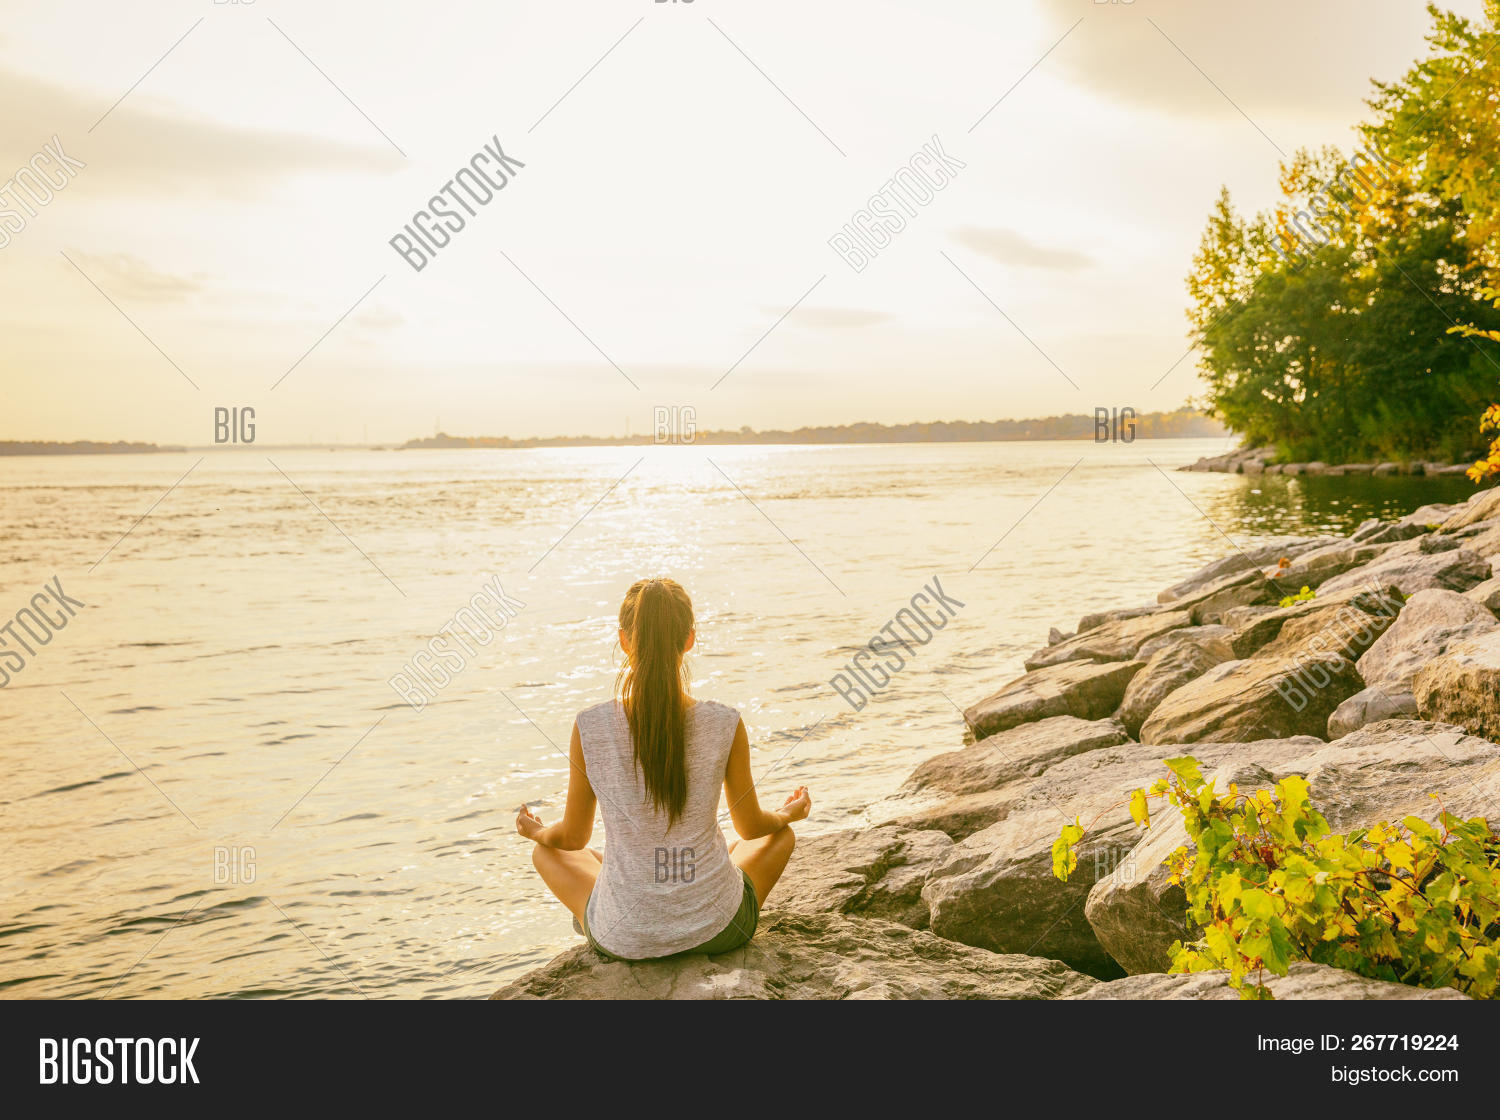 background,beach,behind,city,class,cottage,exercise,fitness,flare,girl,lake,landscape,lifestyle,lotus,meditate,meditating,meditation,mindfulness,morning,nature,one,outdoor,outdoors,outside,park,people,person,pose,relax,retreat,river,sea,shore,silhouette,sitting,spring,summer,sun,sunrise,sunset,sunshine,water,waterfront,weekend,wellbeing,wellness,woman,women,yoga,zen